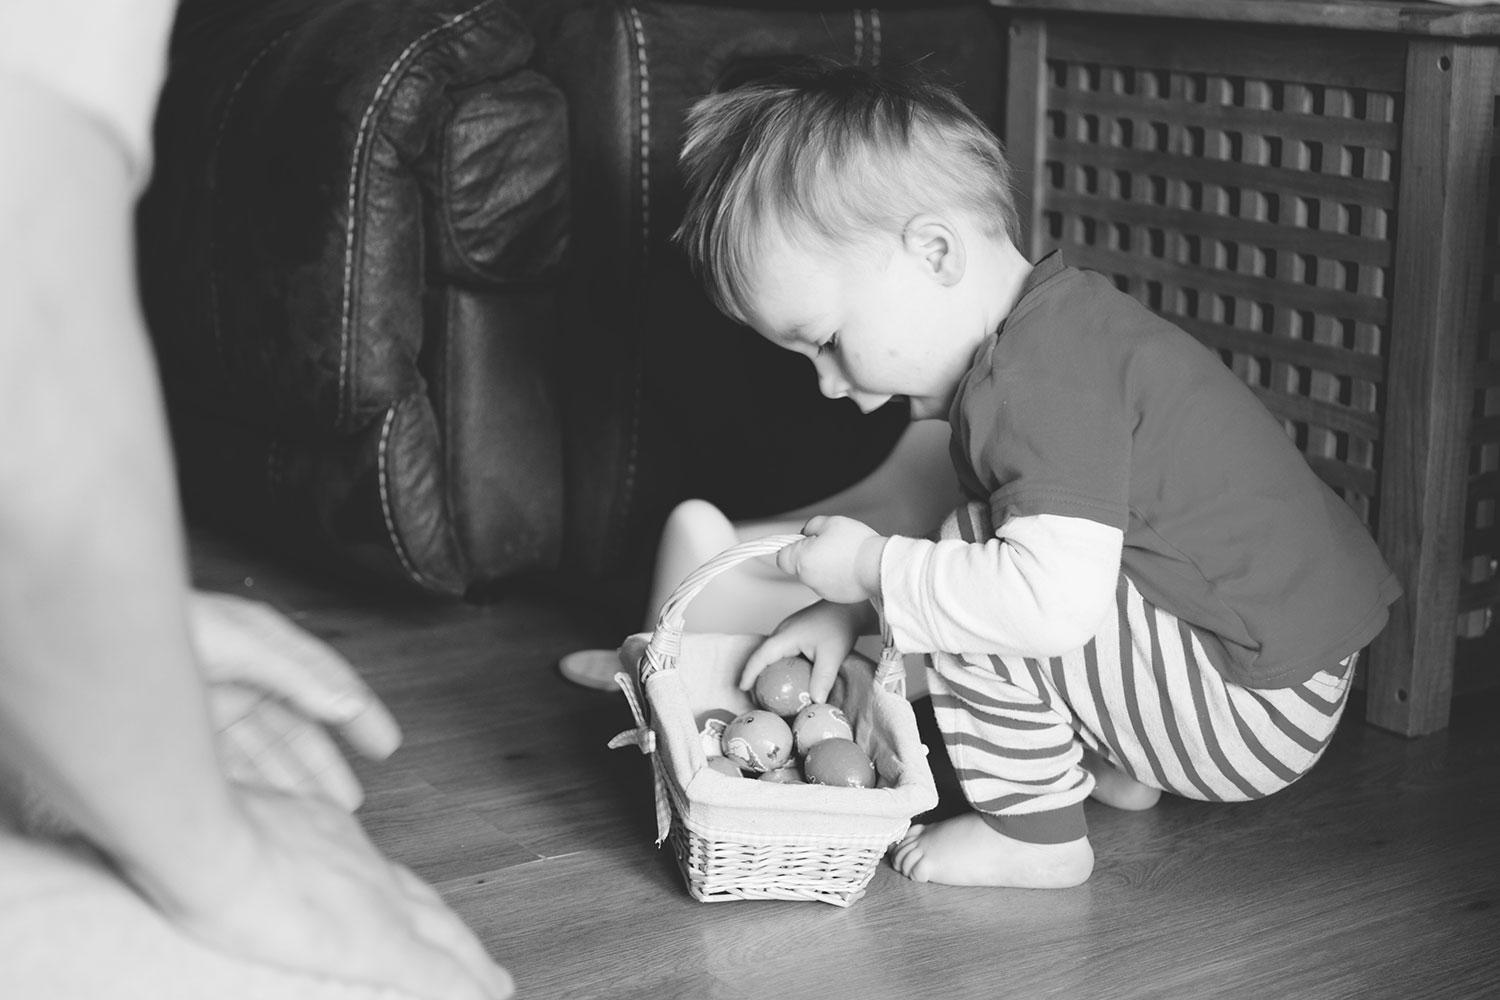 Easter 2016; Let there be chocolate.. Or is that poop? - Toddler eating chocolate eggs after Easter egg hunt on bank holiday with Dad